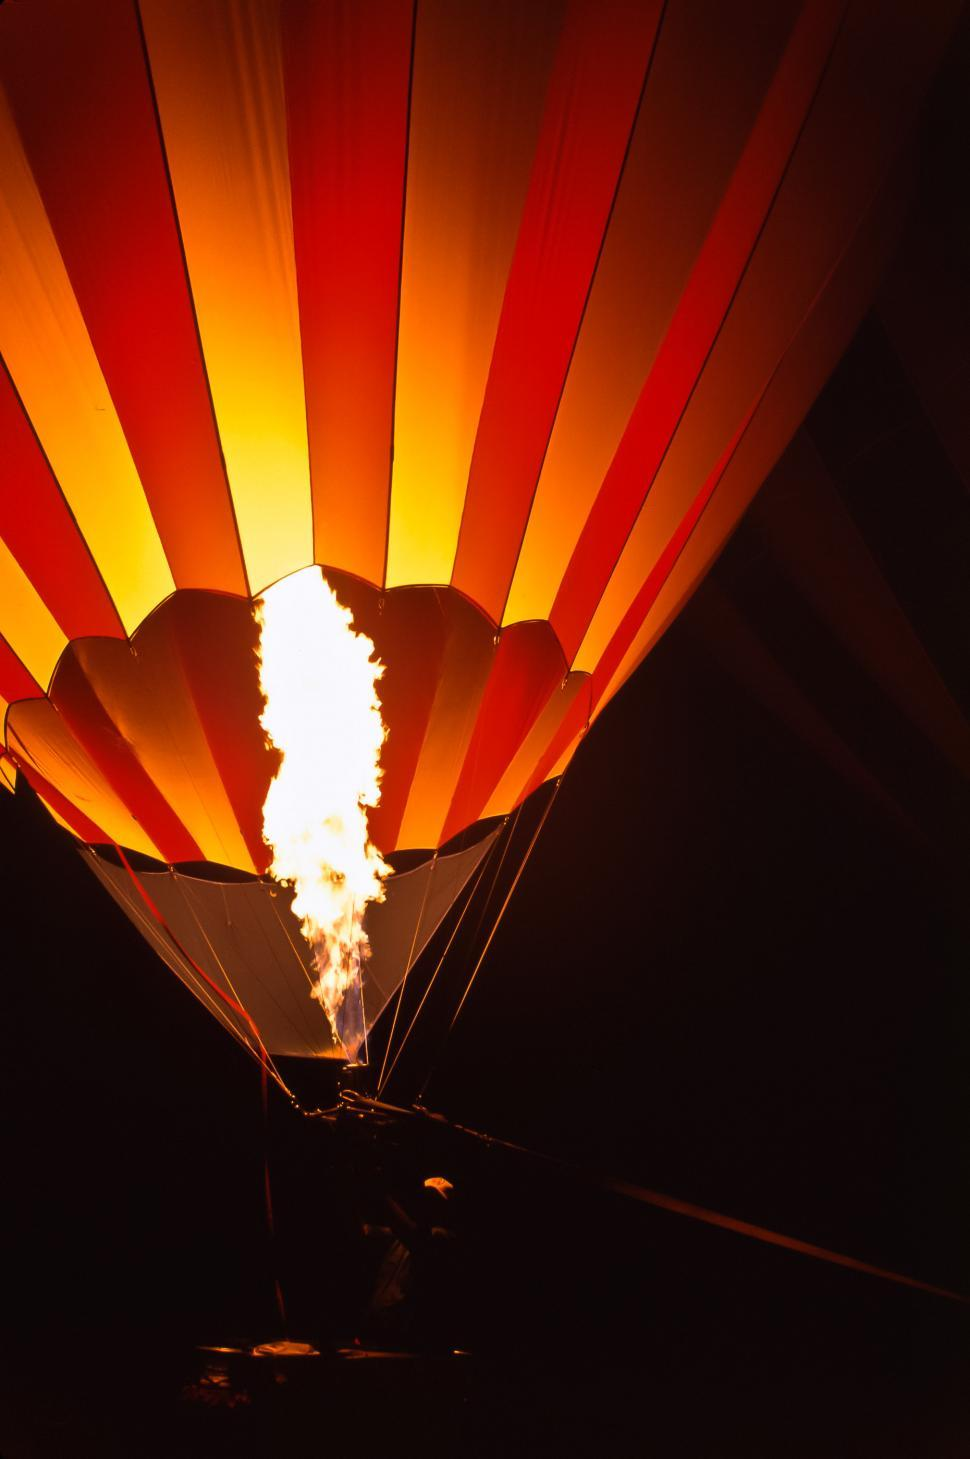 Download Free Stock Photo of Hot Air Balloon